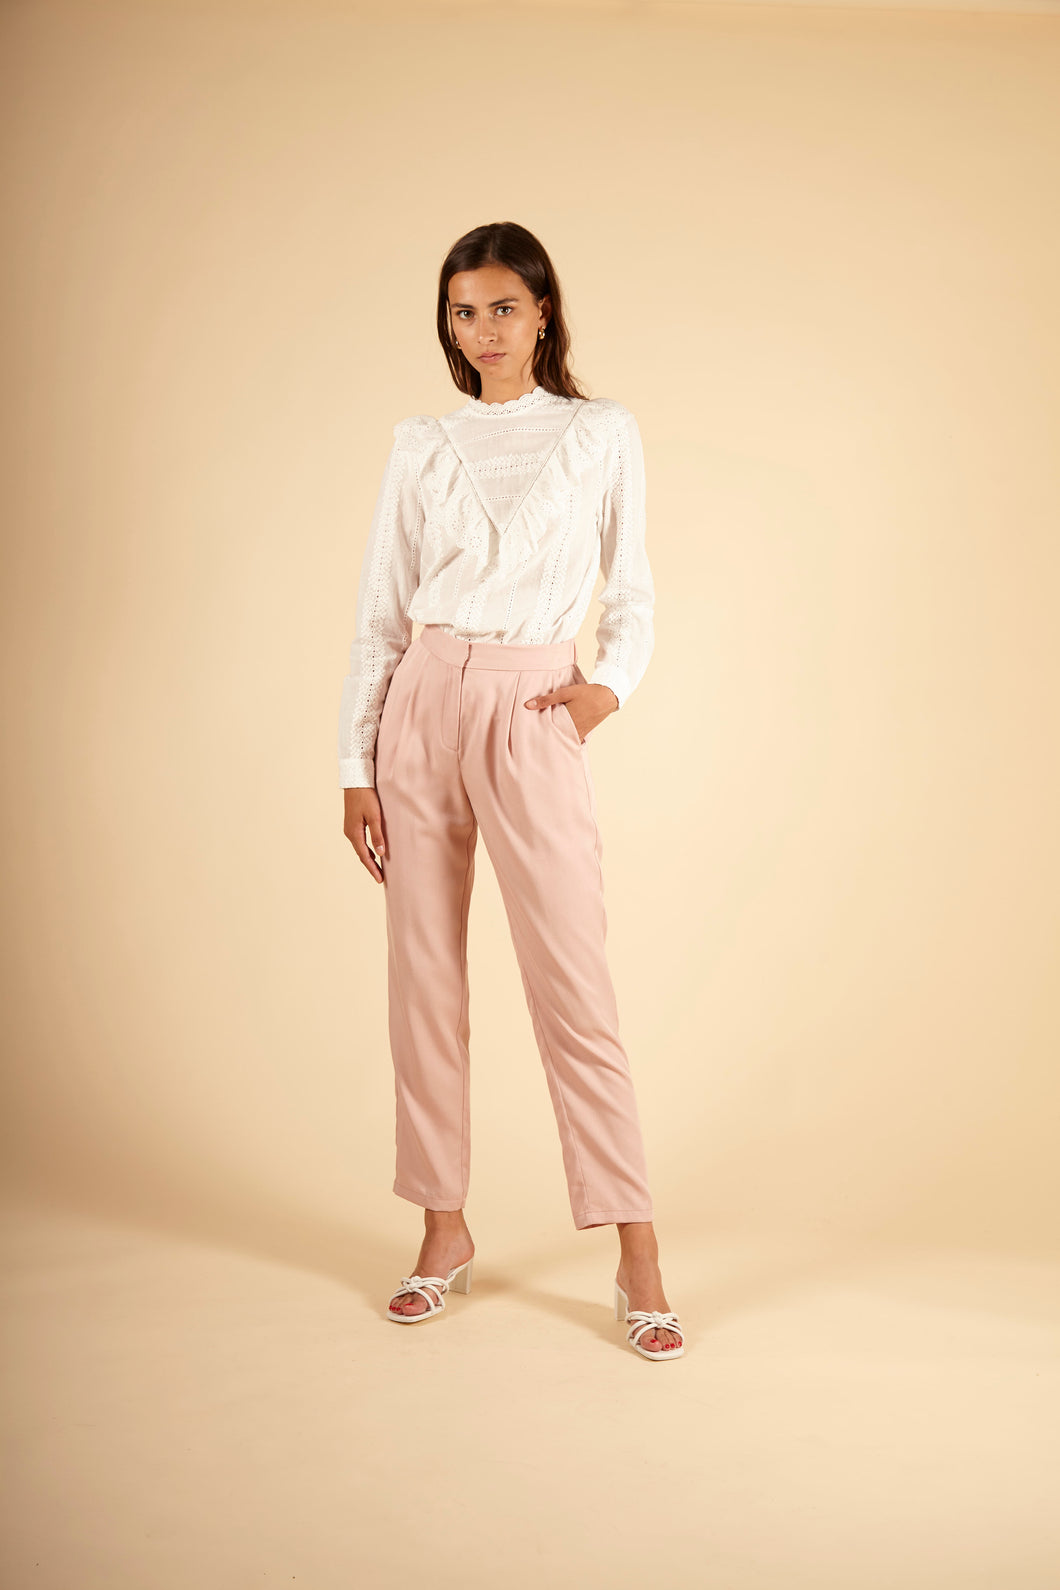 FRNCH PARIS- PALMIRA - WOMEN'S WOVEN PANTS